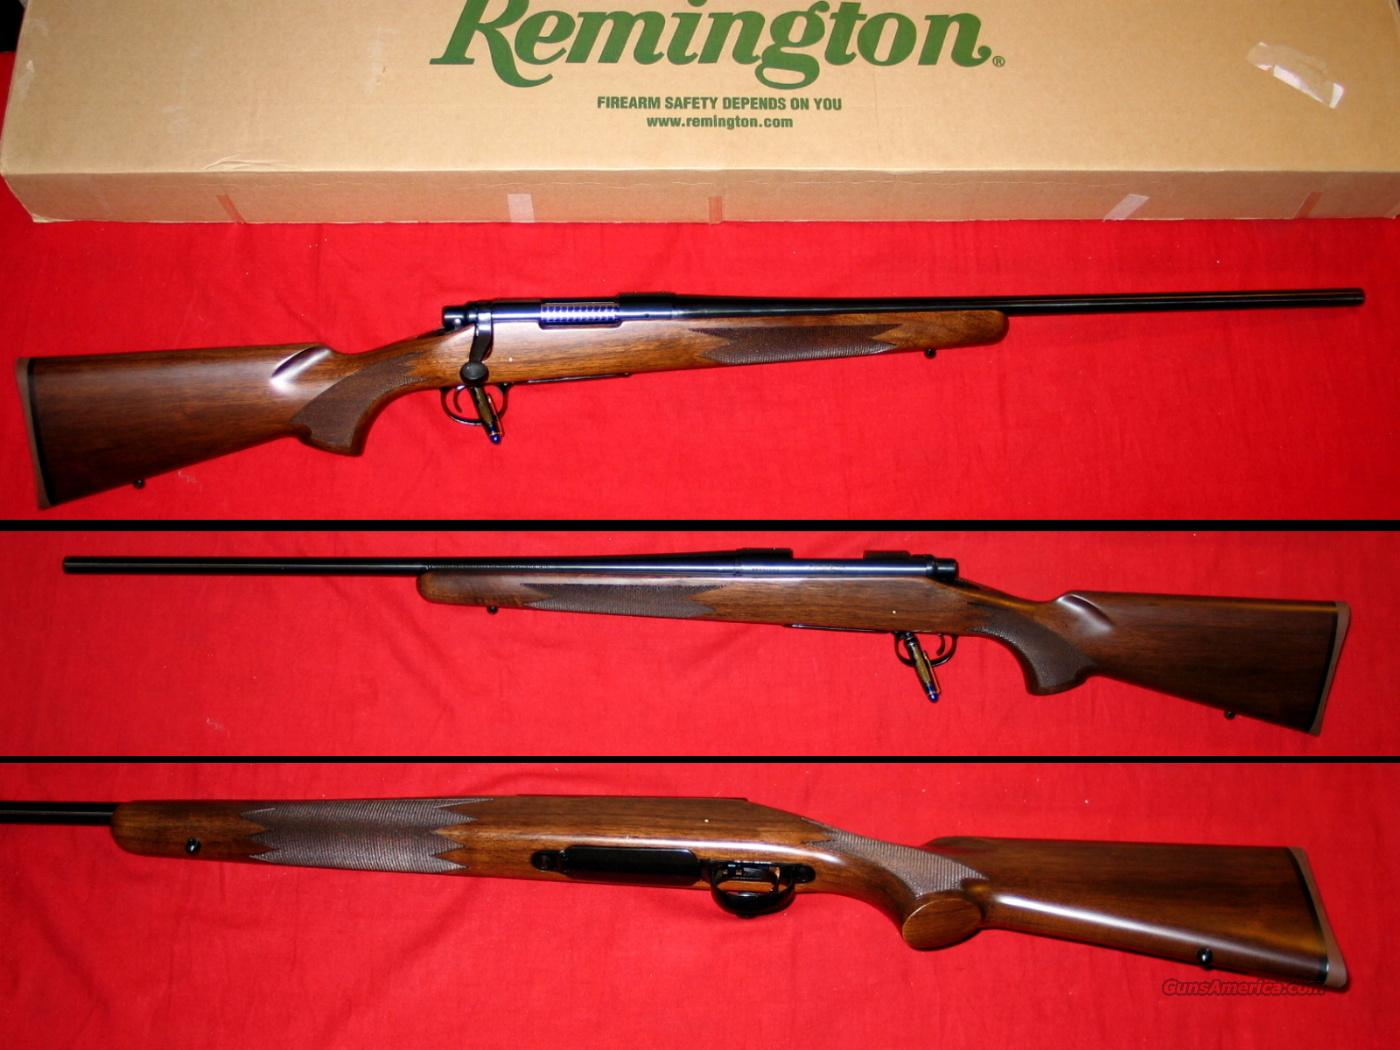 700 Classic .308, 2005 issue, NIB  Guns > Rifles > Remington Rifles - Modern > Model 700 > Sporting